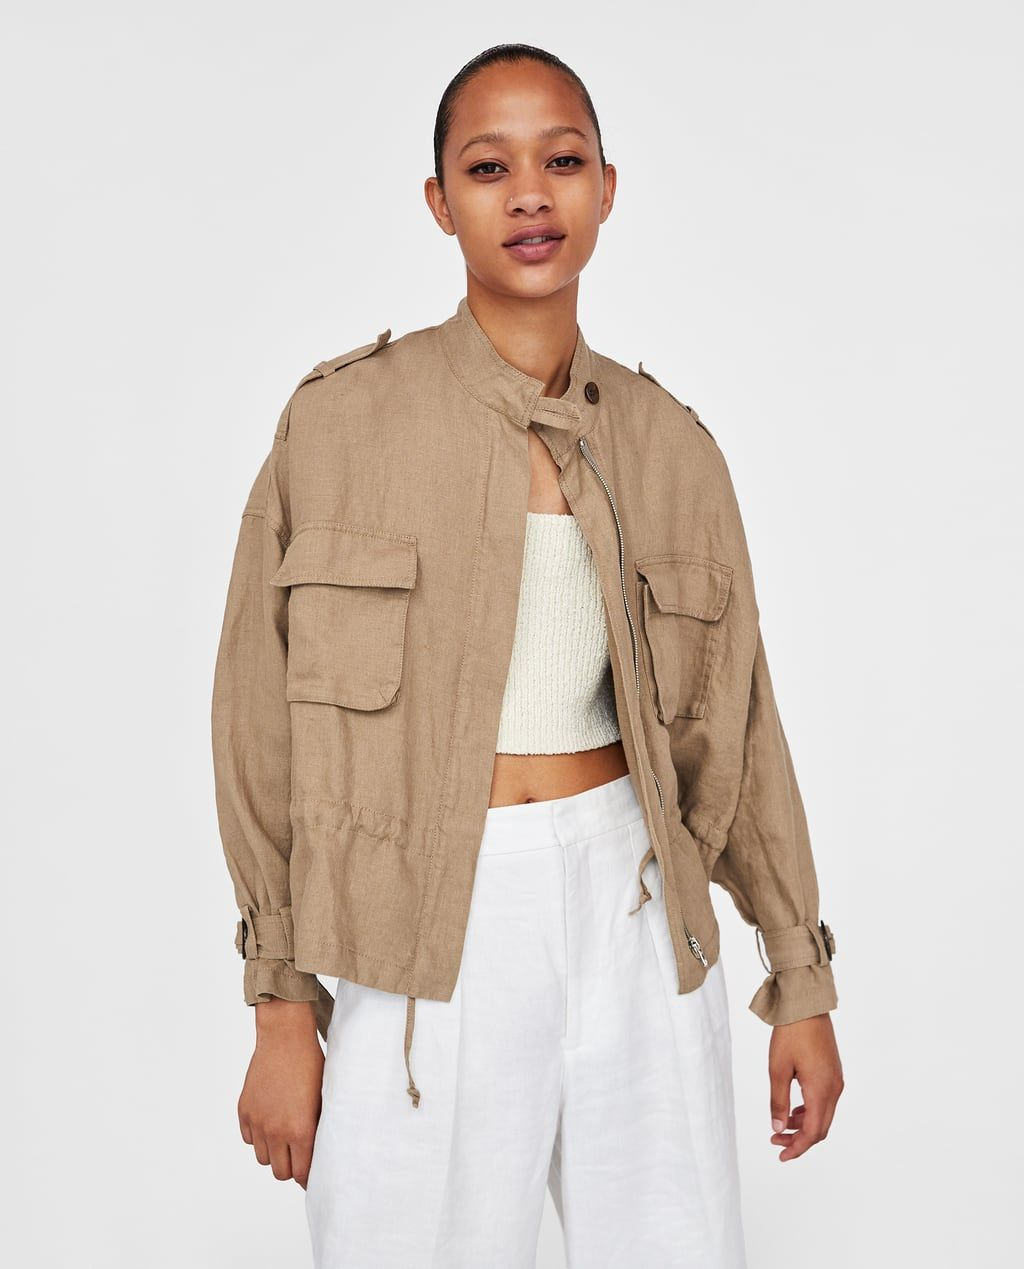 new product de4b6 8540b RUSTIC JACKET WITH POCKETS